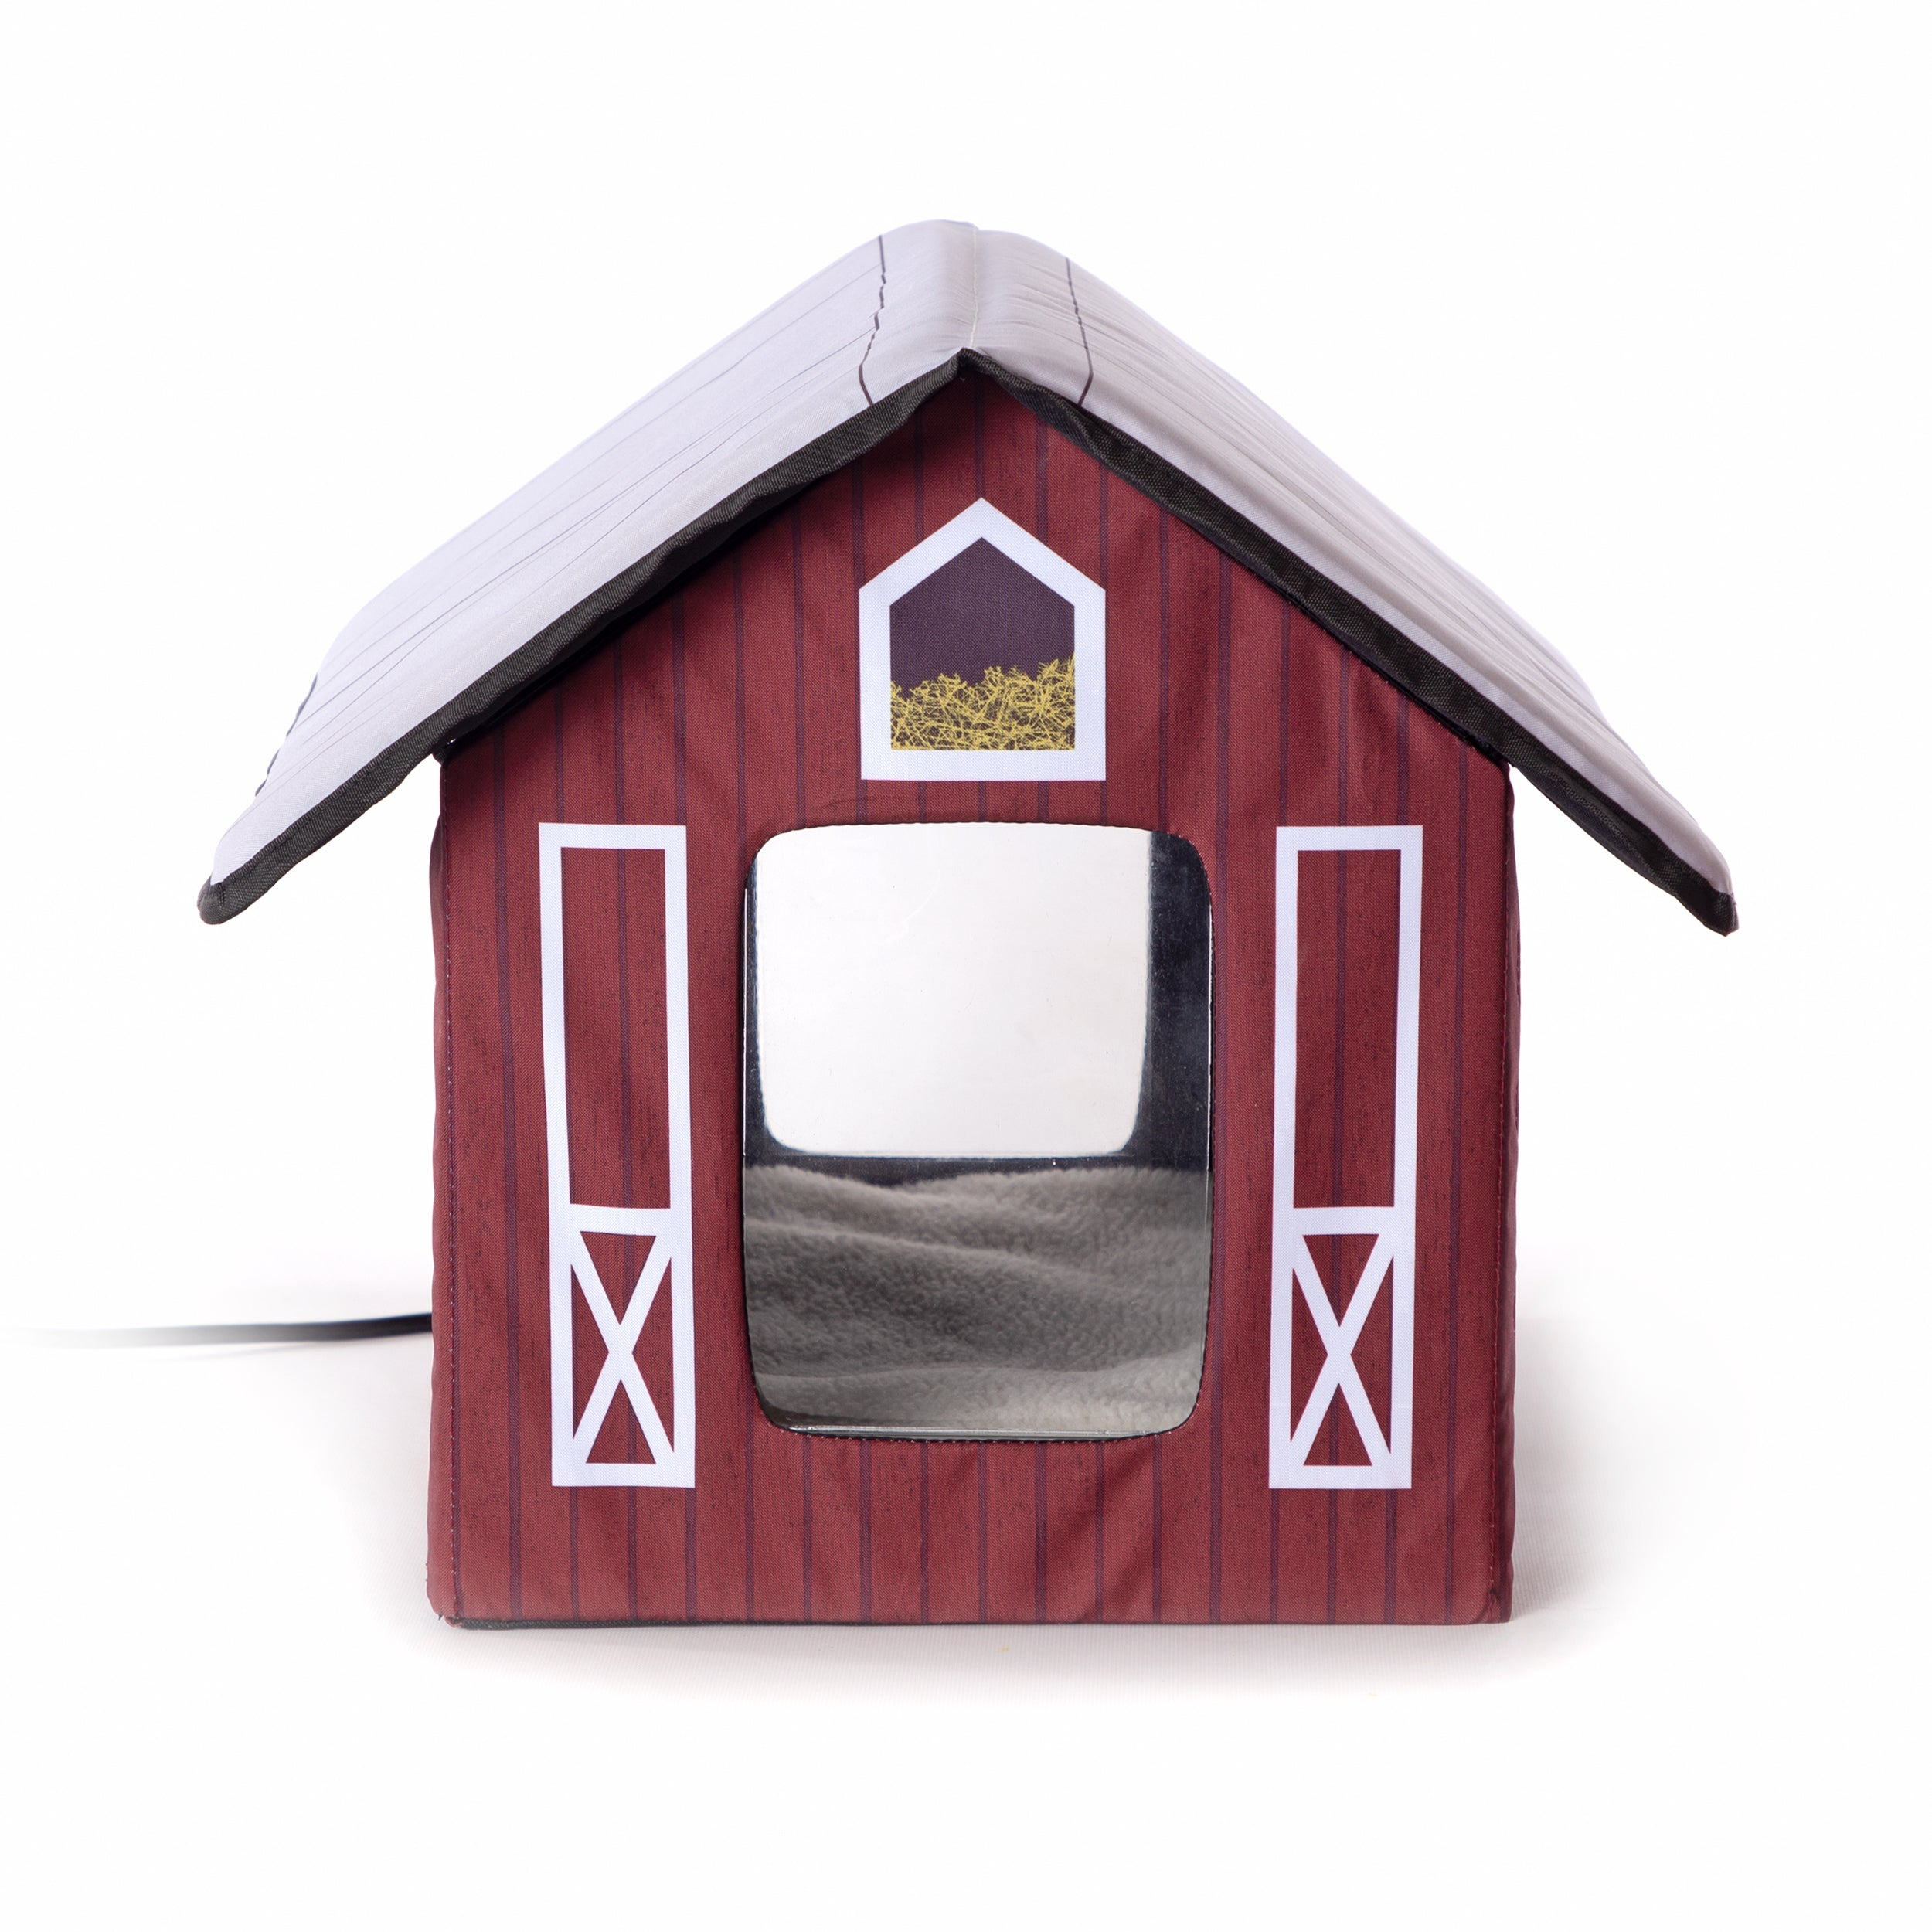 Outdoor Kitty House - Barn Design - Front